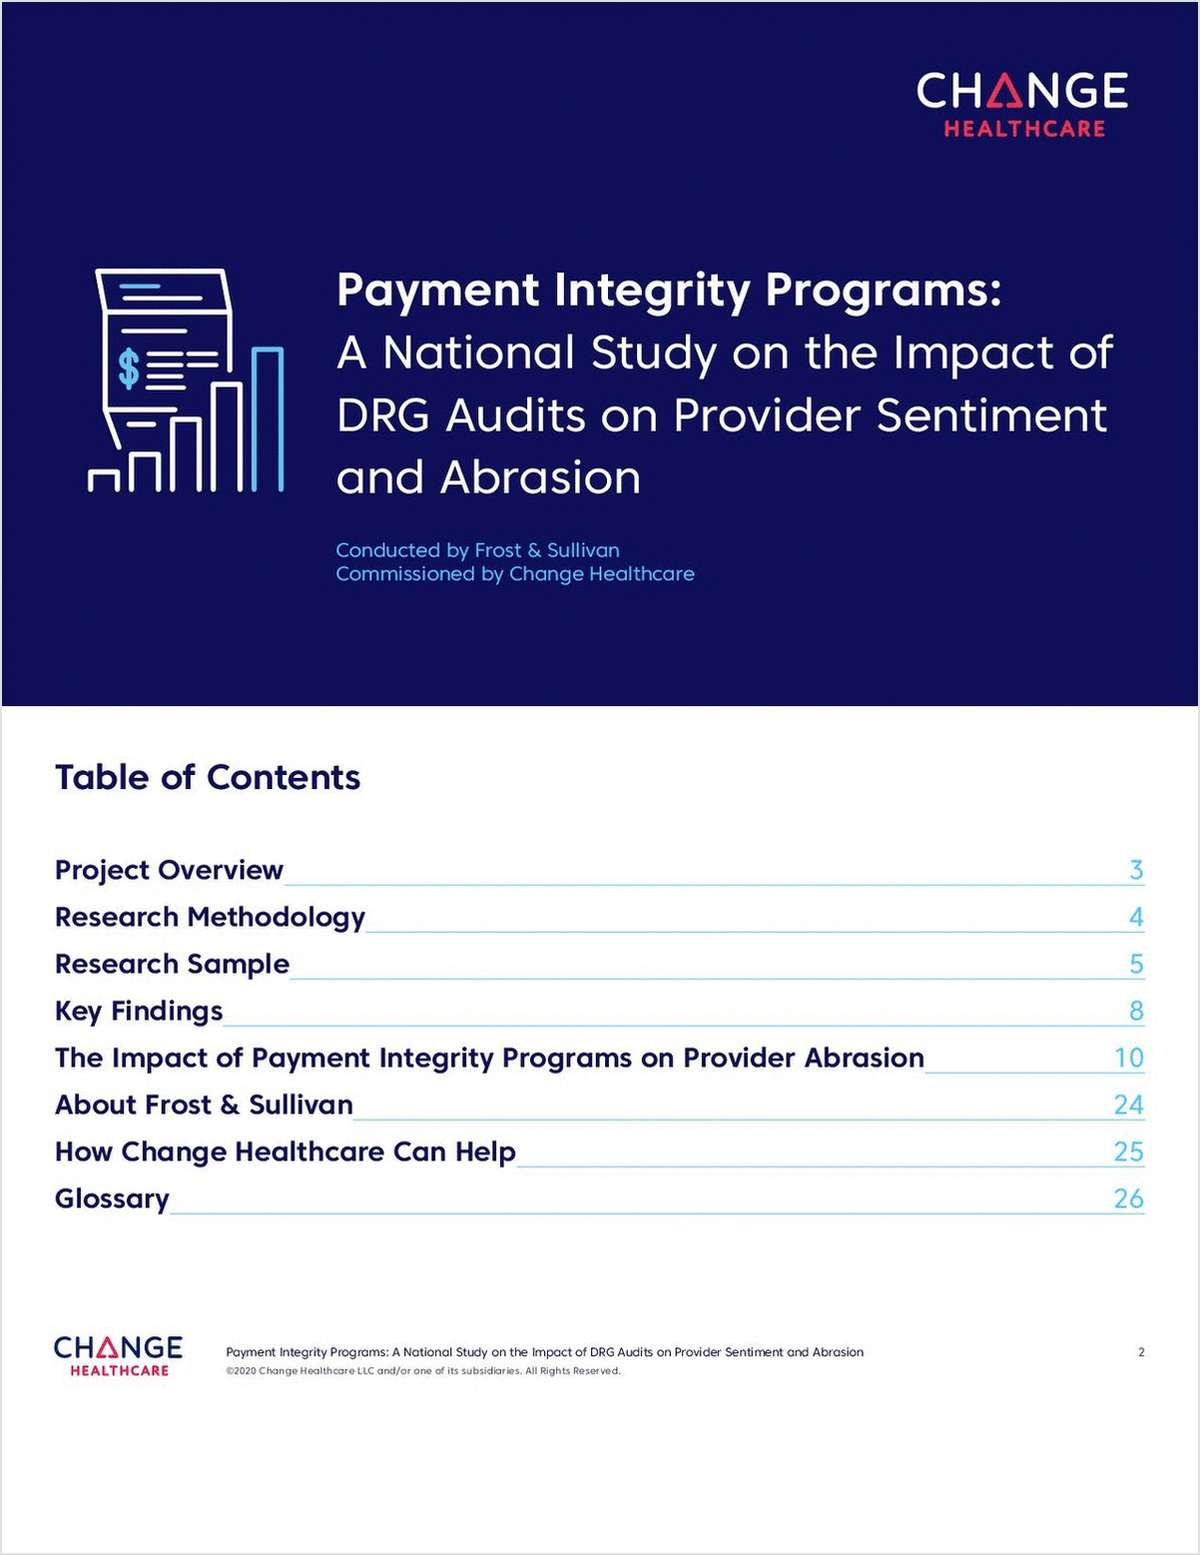 Payment Integrity Programs: A National Study on the Impact of DRG Audits on Provider Sentiment and Abrasion